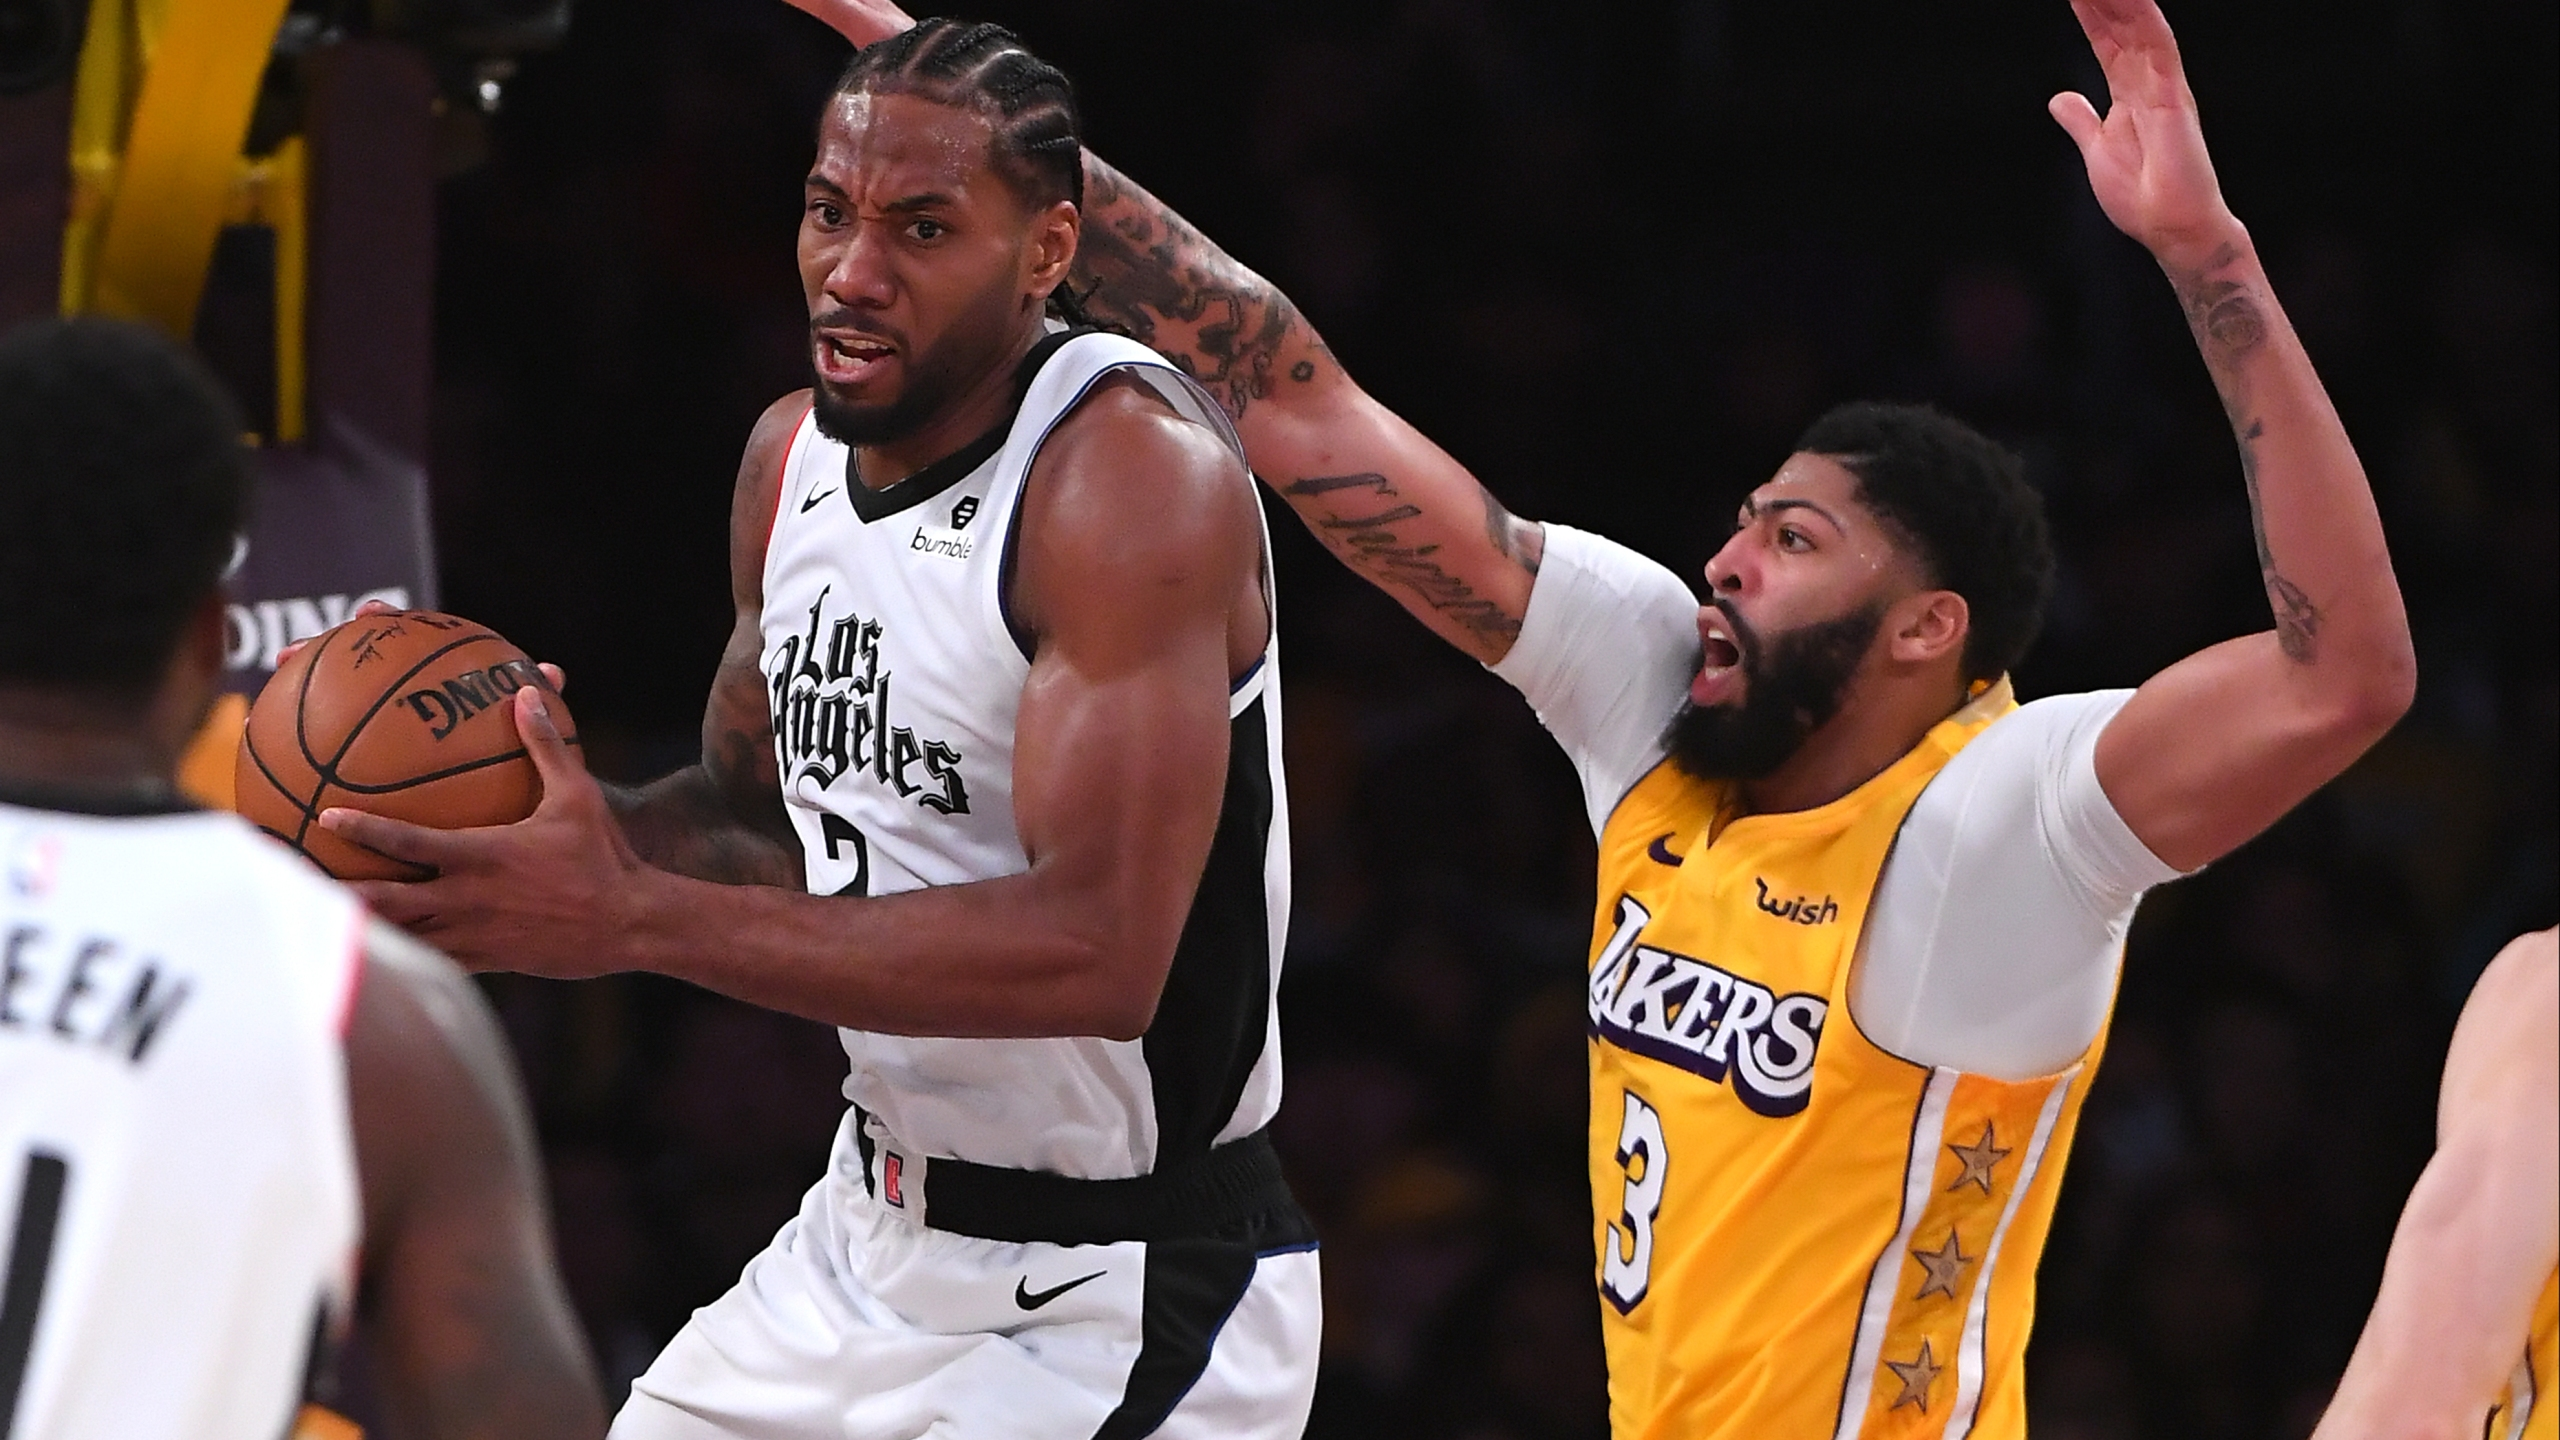 Anthony Davis #3 of the Los Angeles Lakers defends guards Kawhi Leonard #2 of the Los Angeles Clippers as he makes a pass under the basket in the second half of the game at Staples Center on Dec. 25, 2019. (Credit: Jayne Kamin-Oncea/Getty Images)